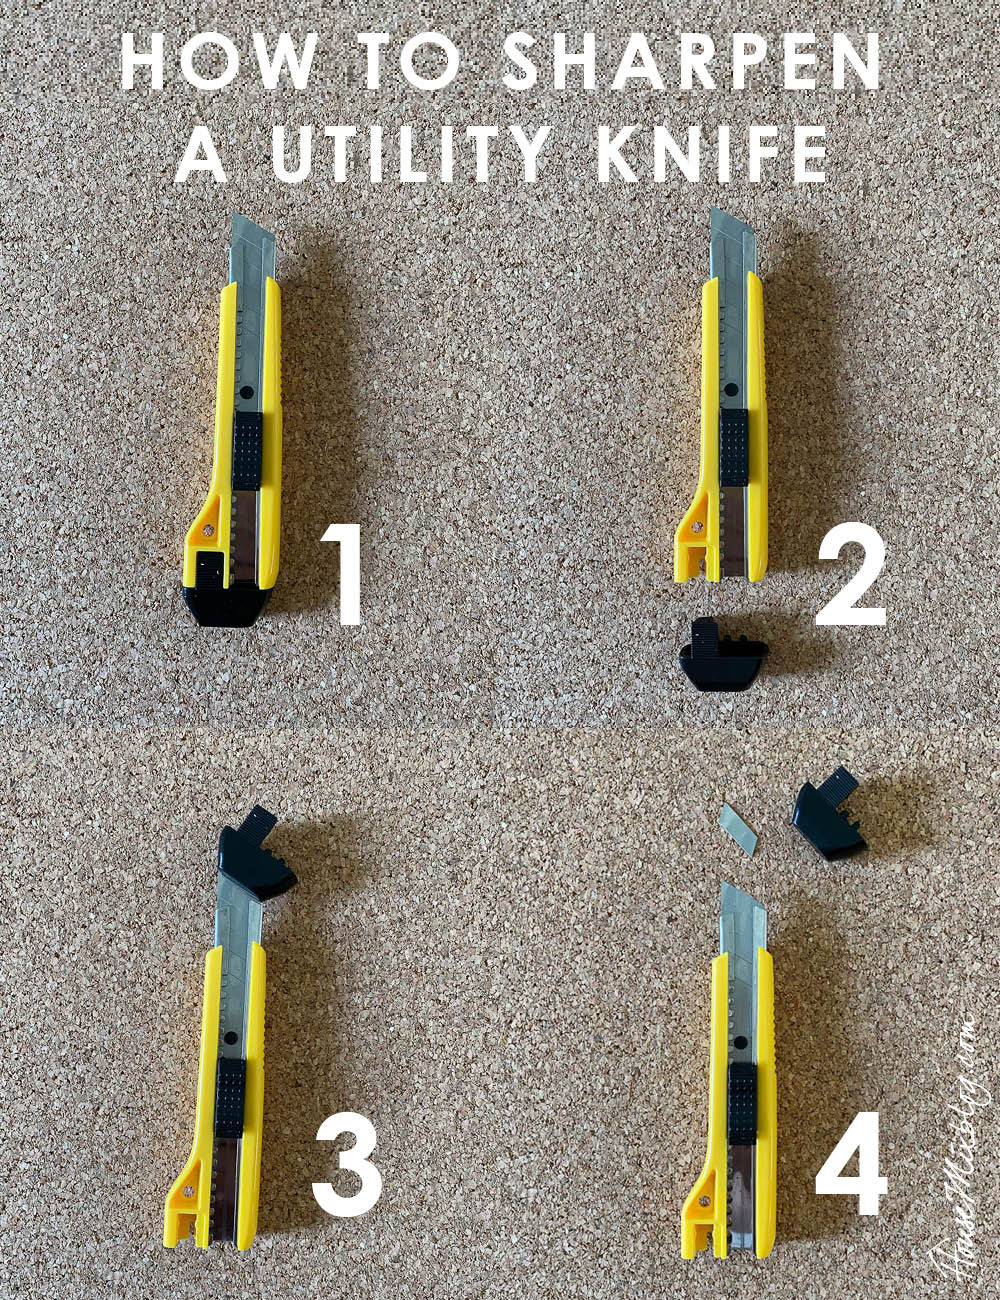 How to sharpen or break off a utility knife box cutter blade safely